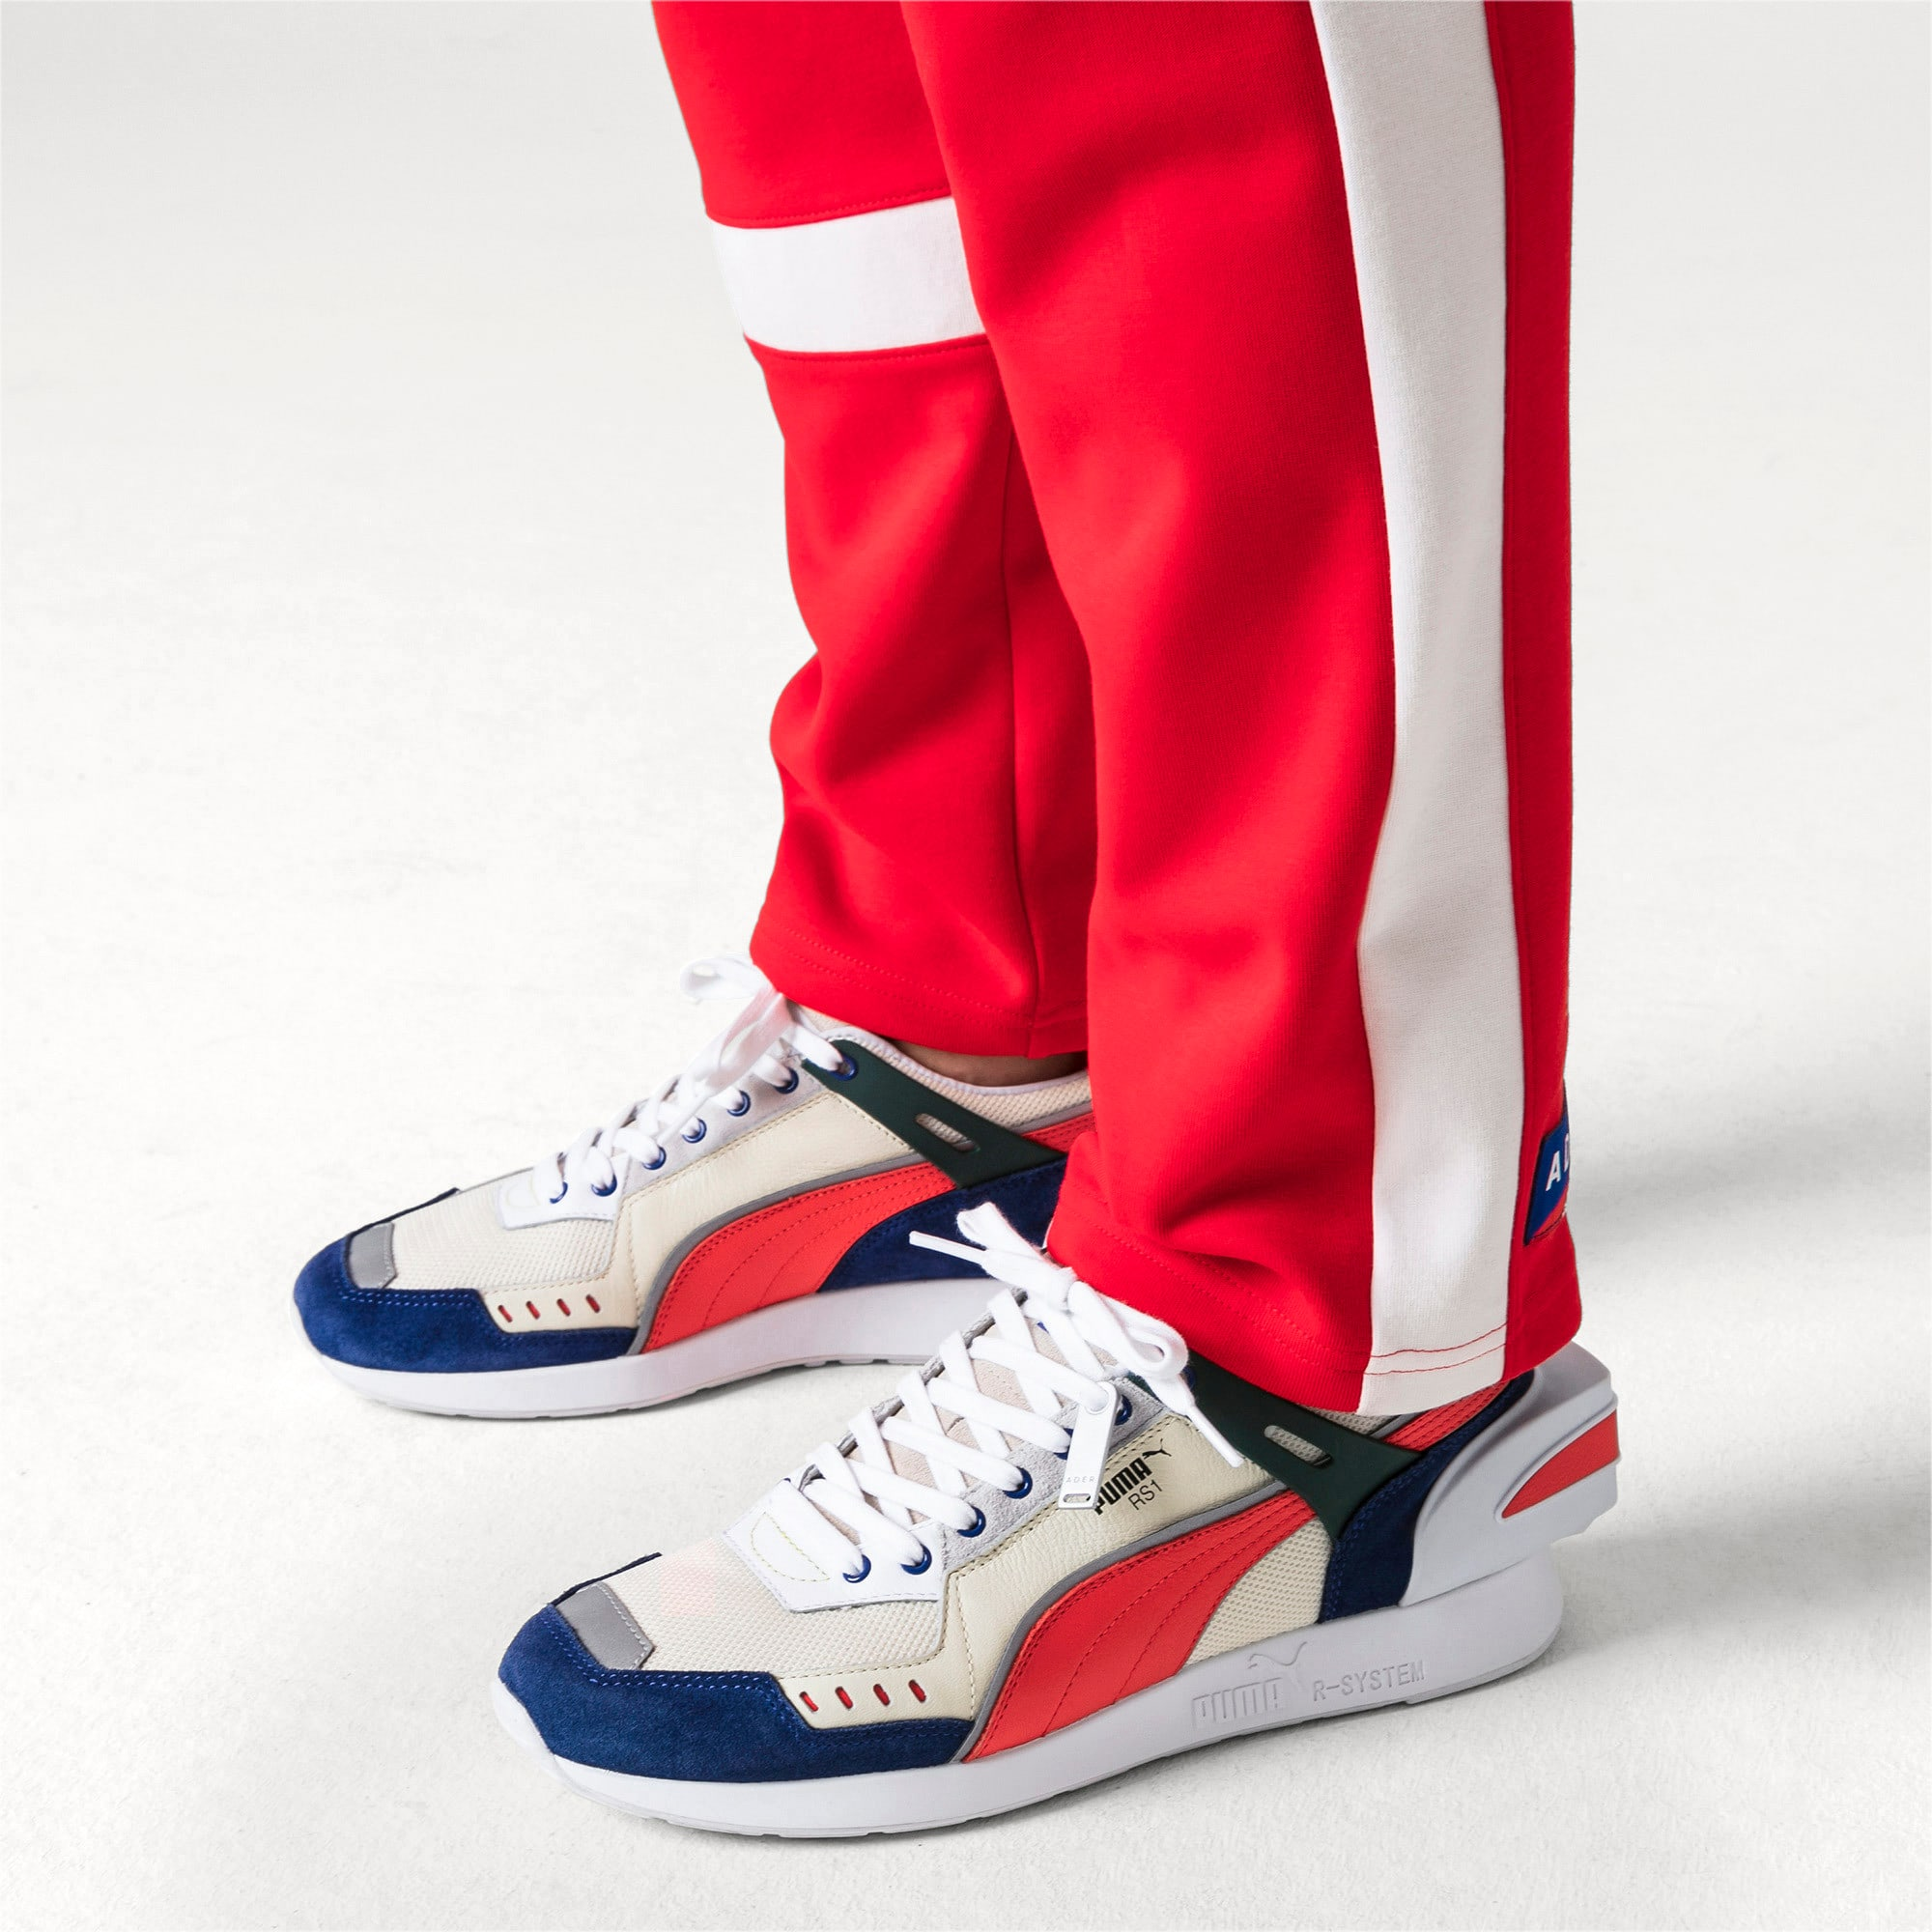 Thumbnail 2 of PUMA x ADER ERROR RS-1 Sneakers, Whisper White-Blueprint-Red, medium